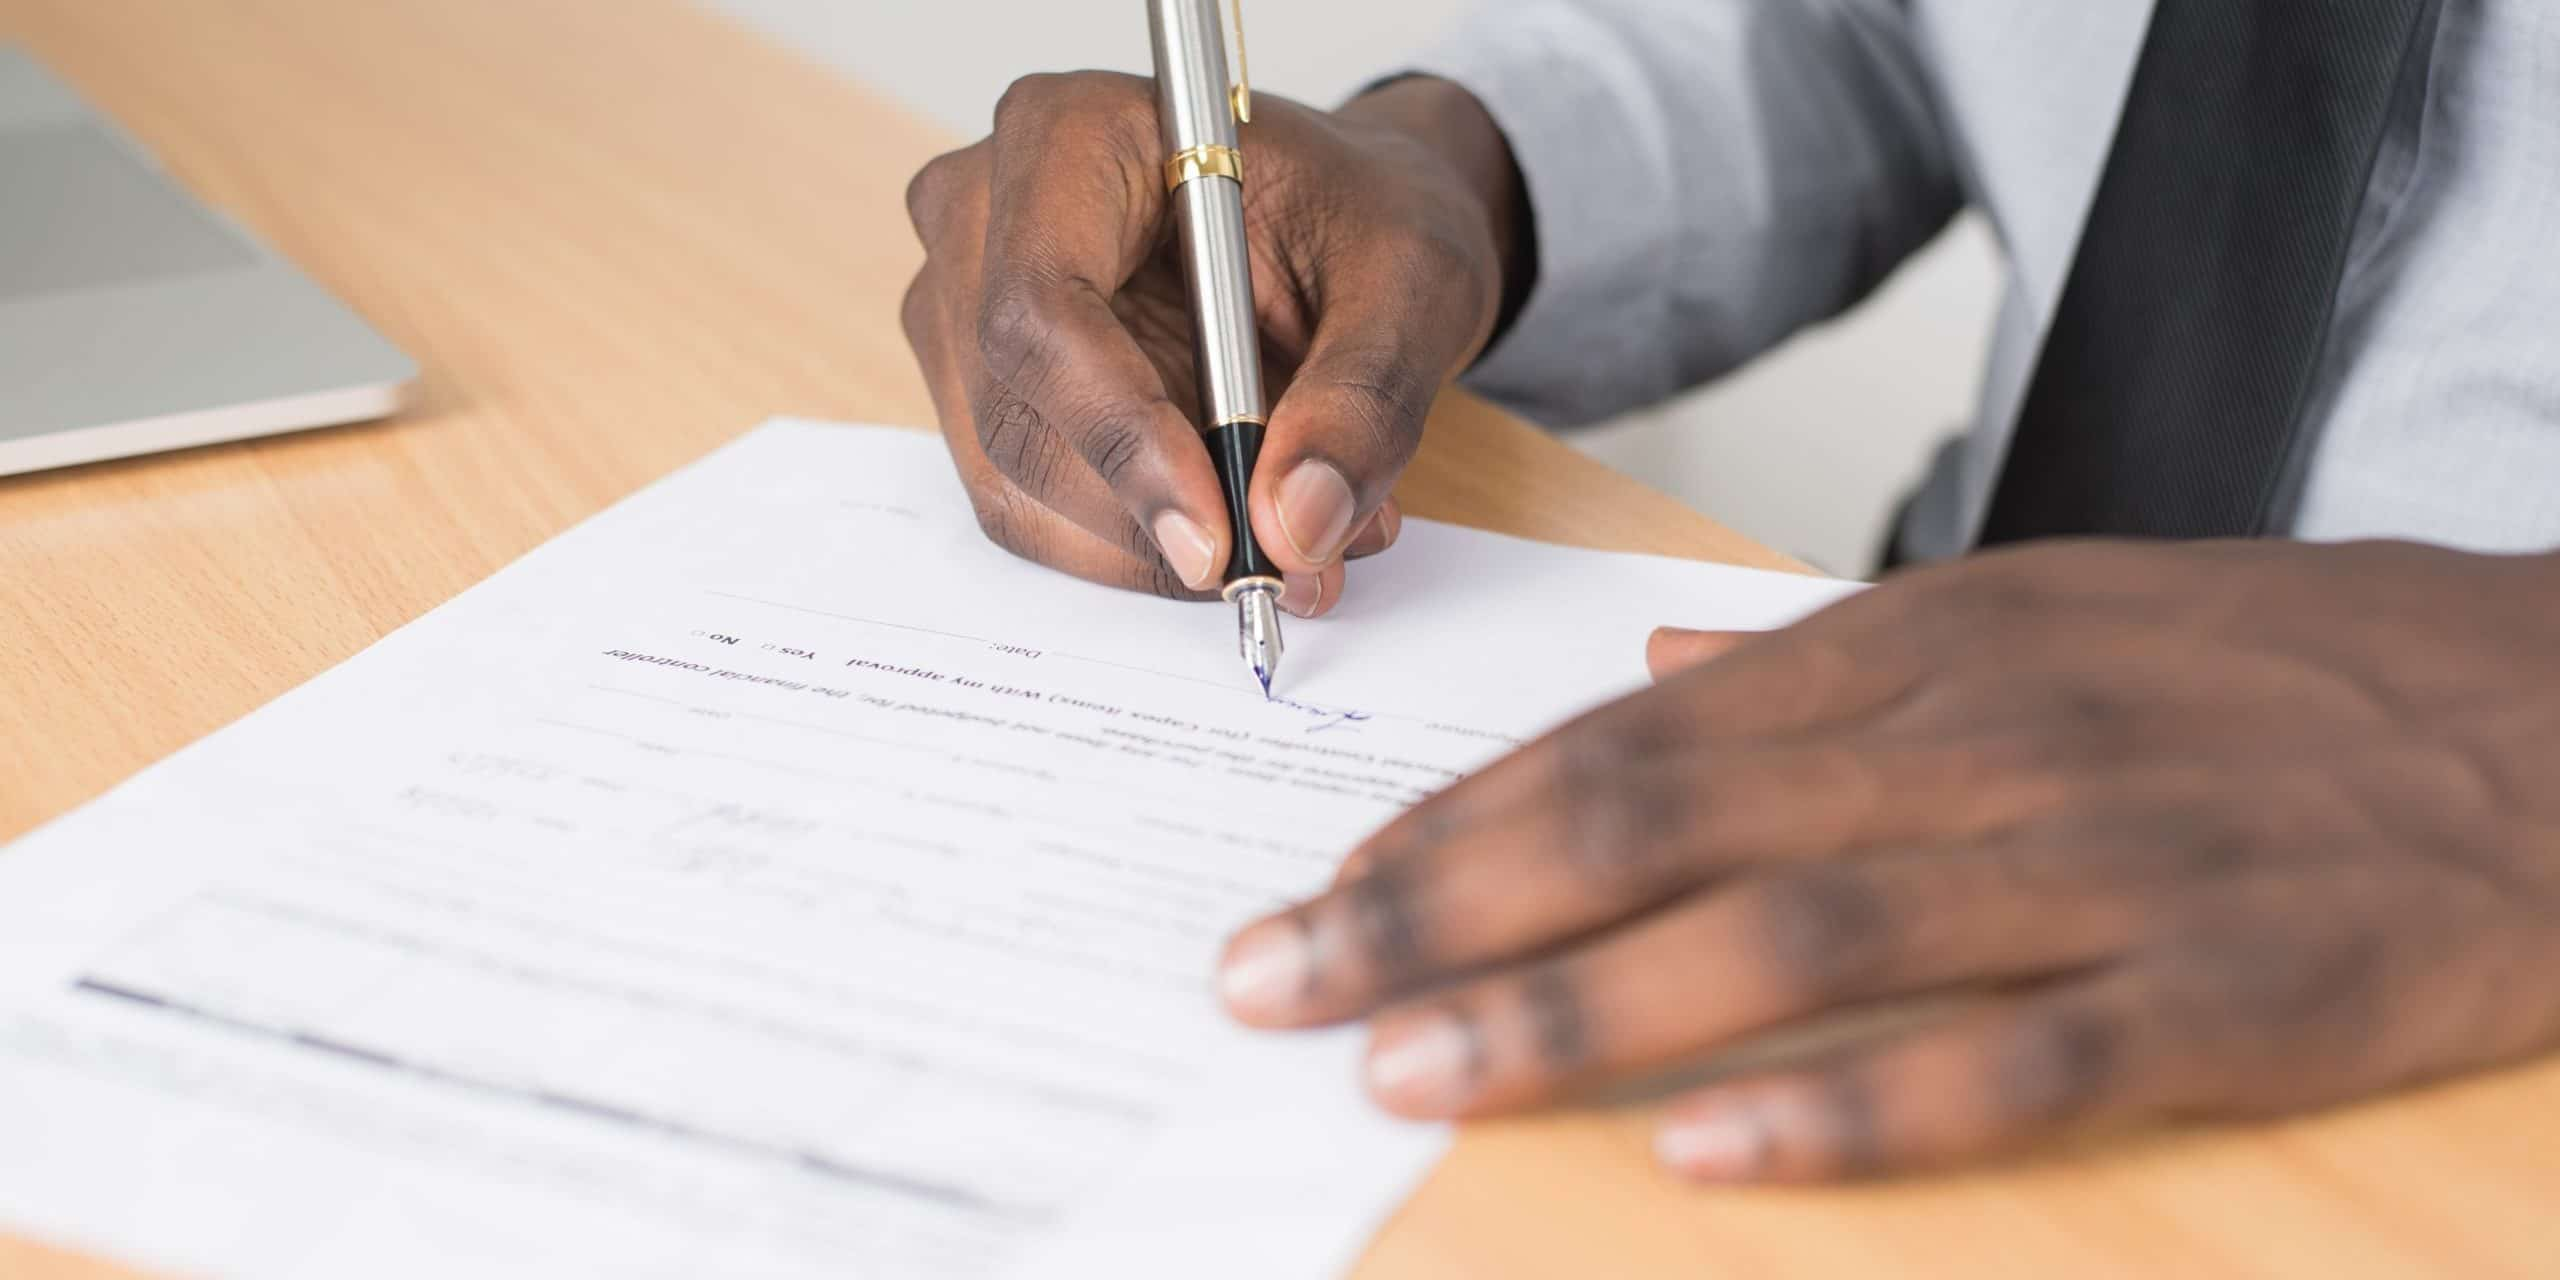 Close up view of person's hands filing out a form on a desk